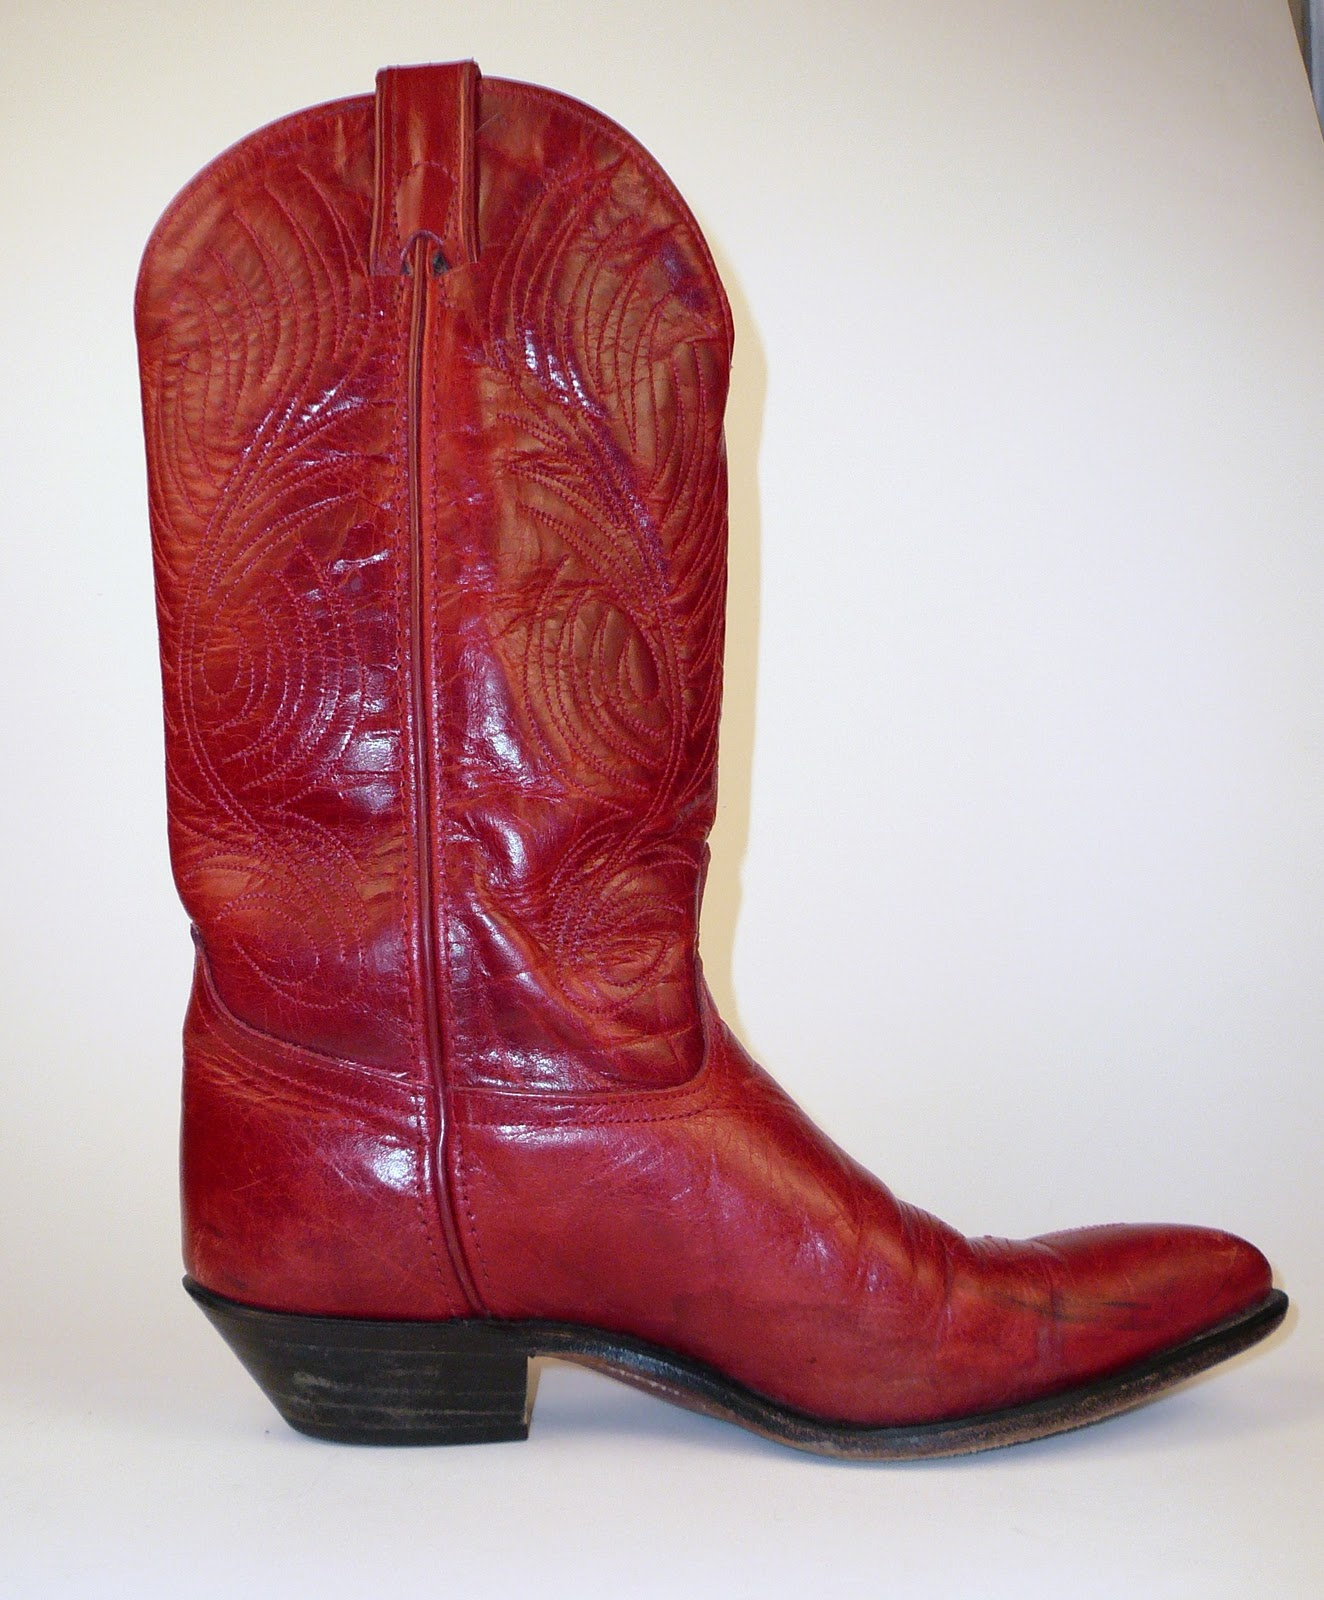 Popular Girl Cowboy Boots | Red Cowboy Boots For Women